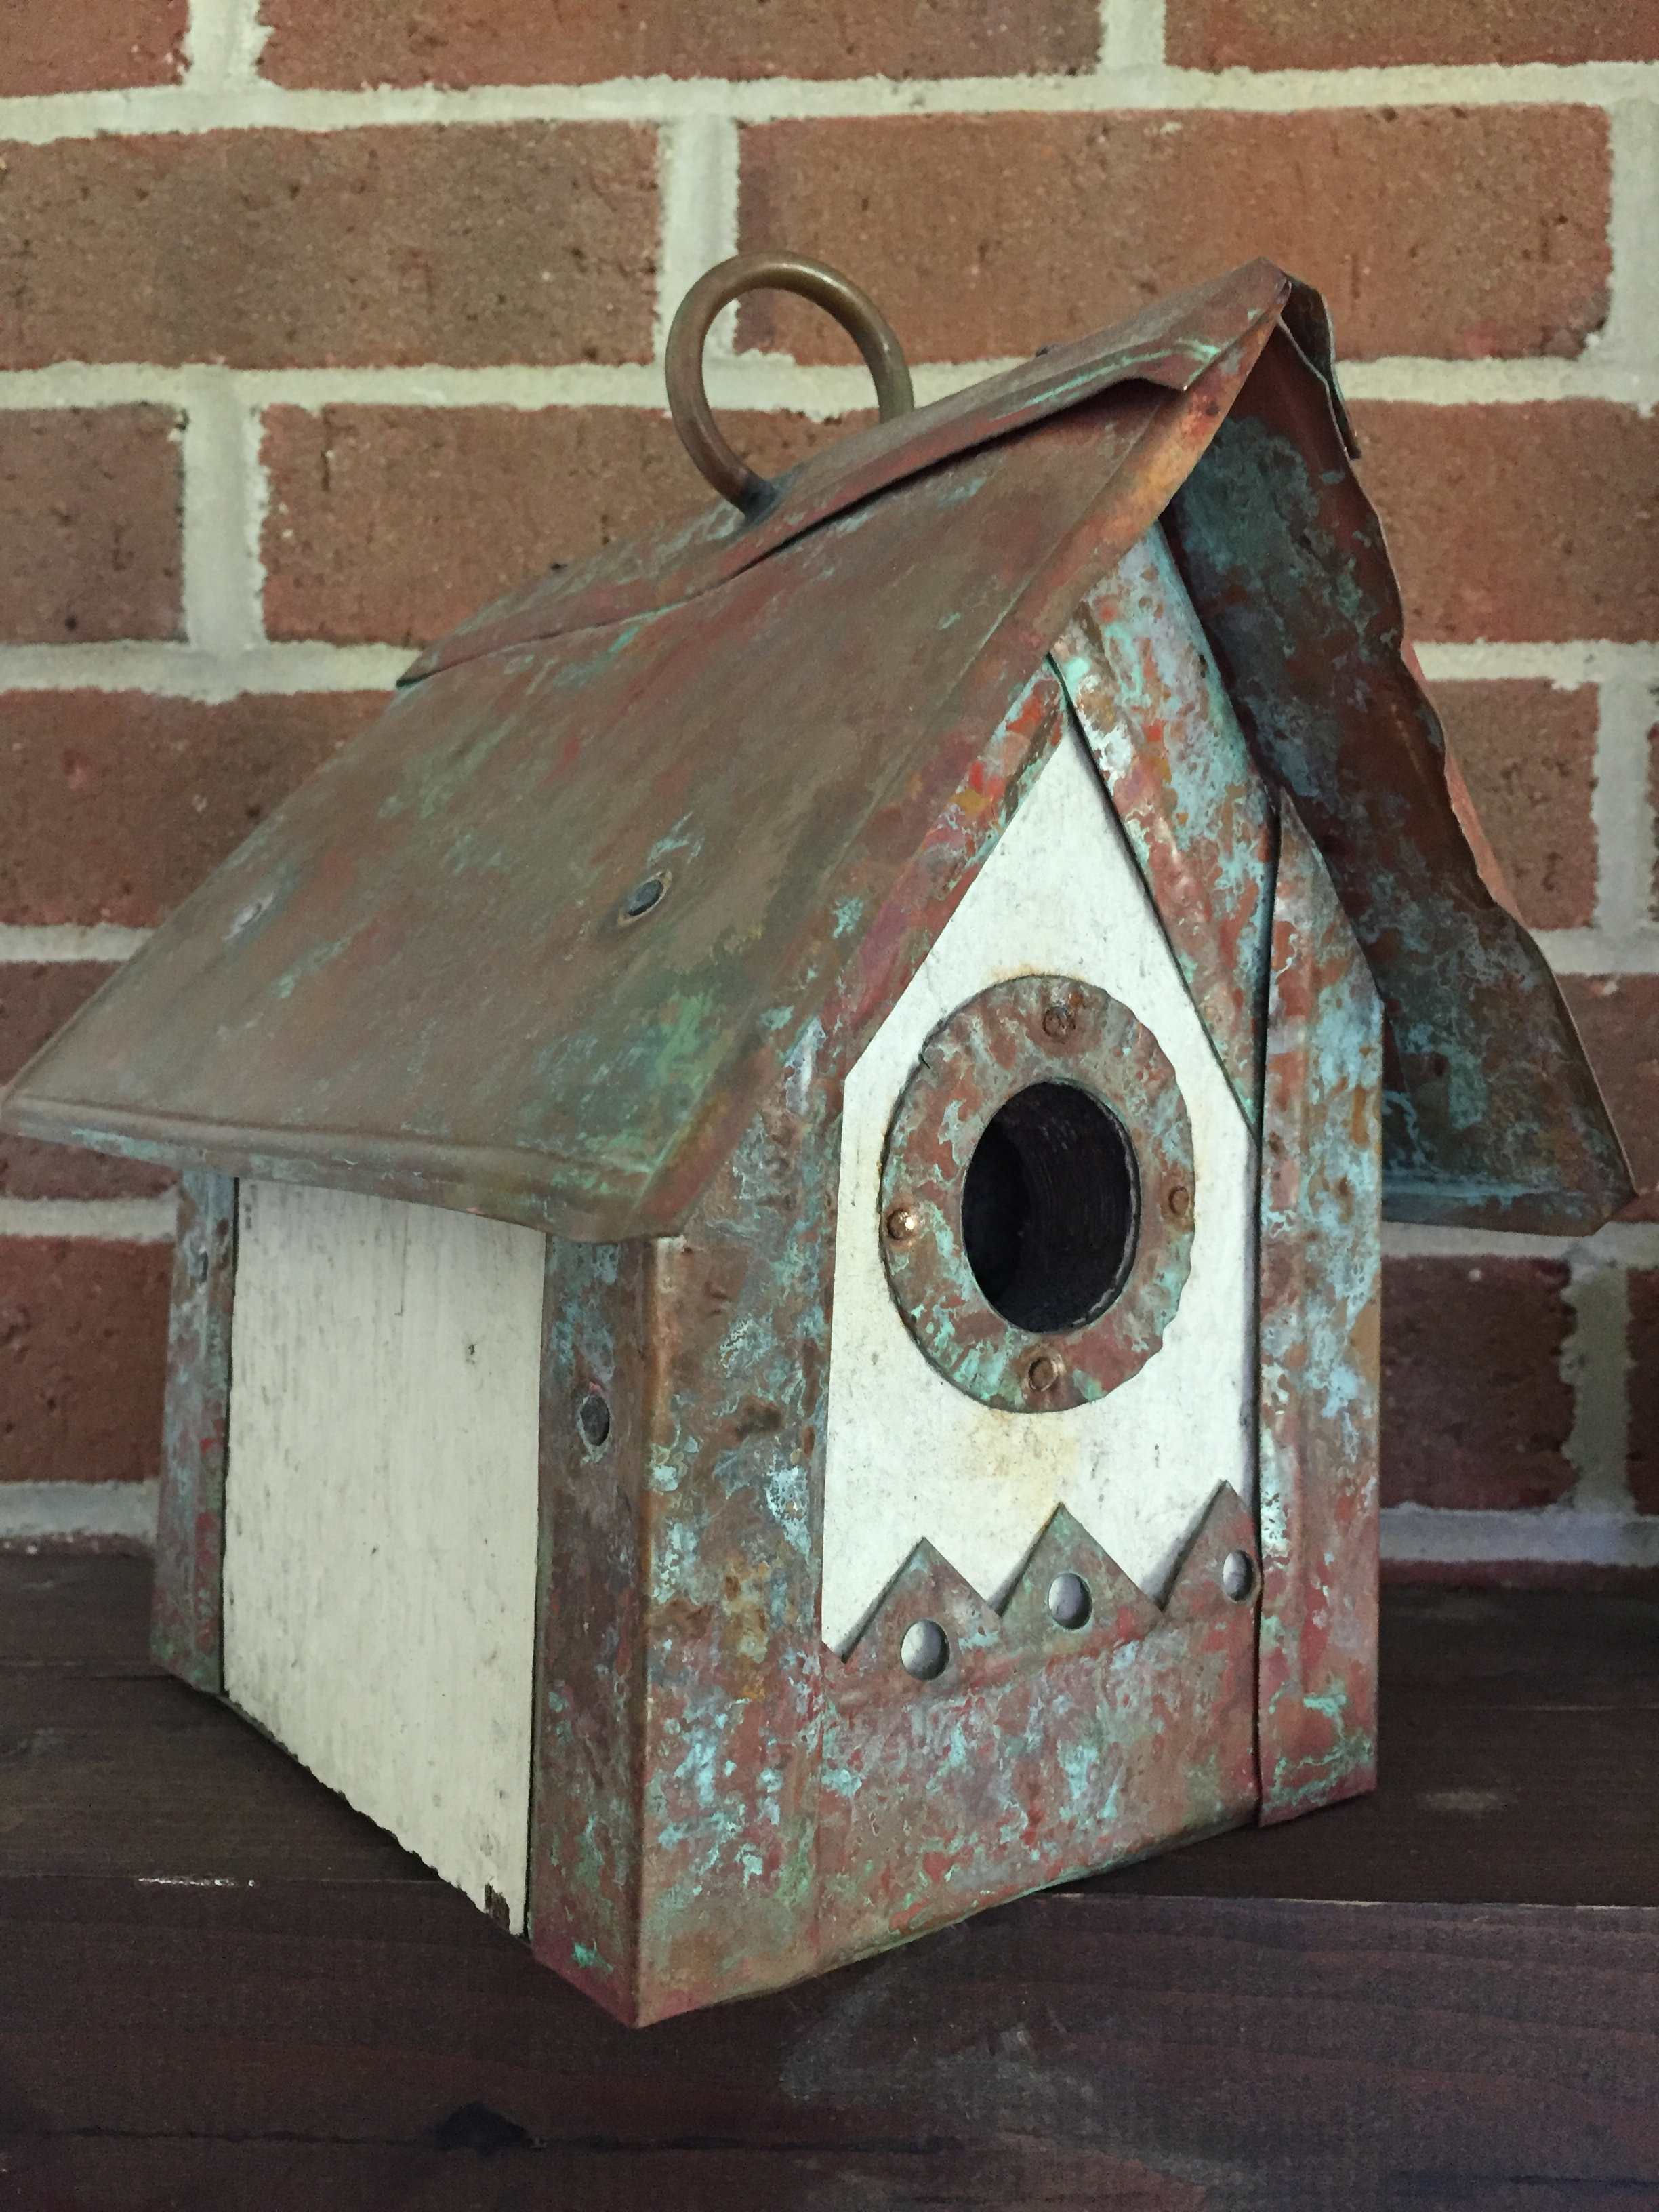 One of my brothers gave me this birdhouse years ago. It is made from salvaged copper and wood. It used to live in the recreation room of our previous house, but has found a much more agreeable home on the mantle of the bedroom fireplace.